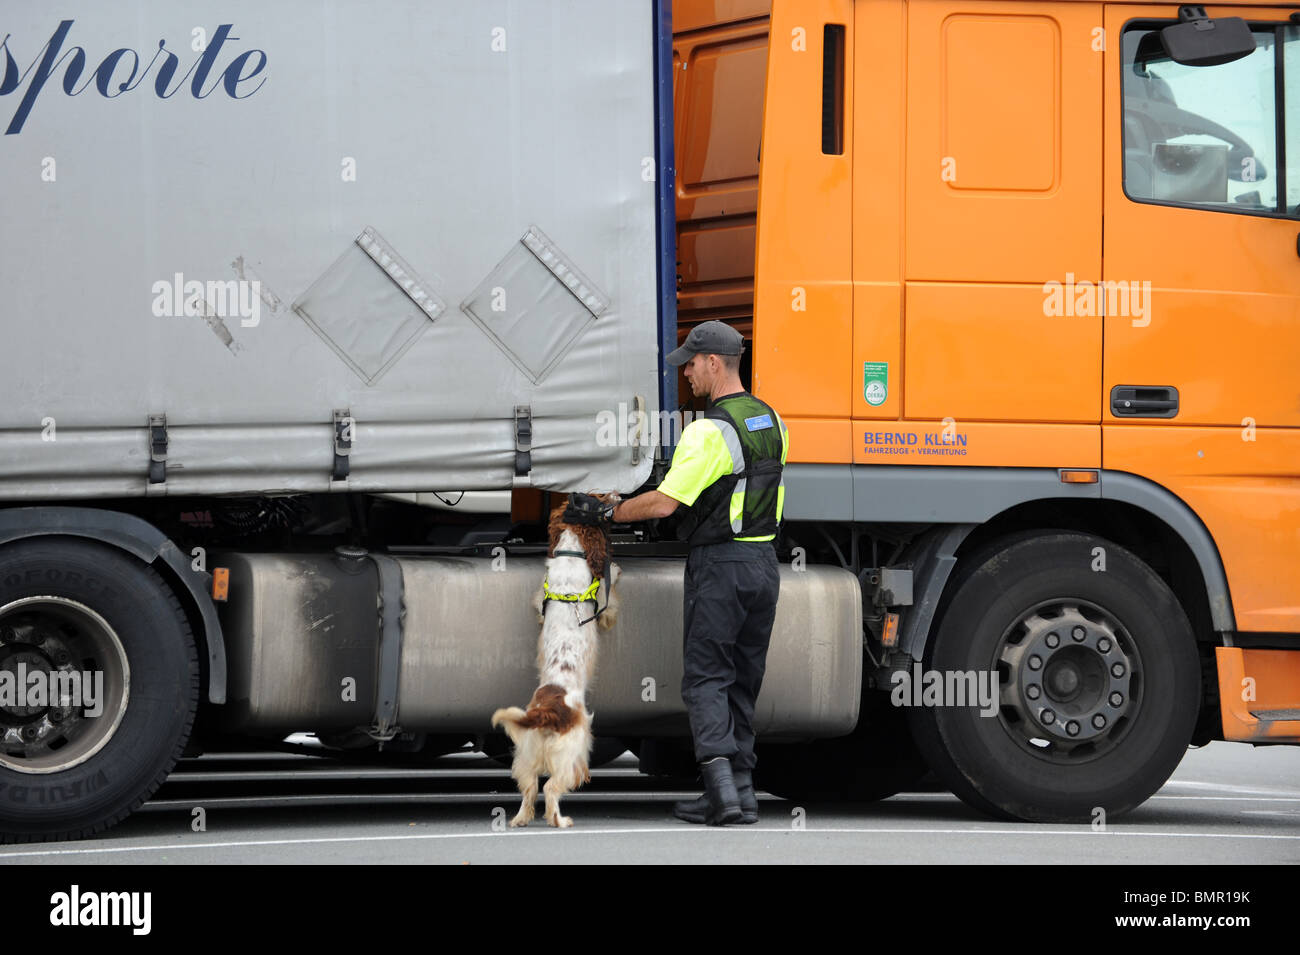 Calais France security officer checking lorries with sniffer dog - Stock Image